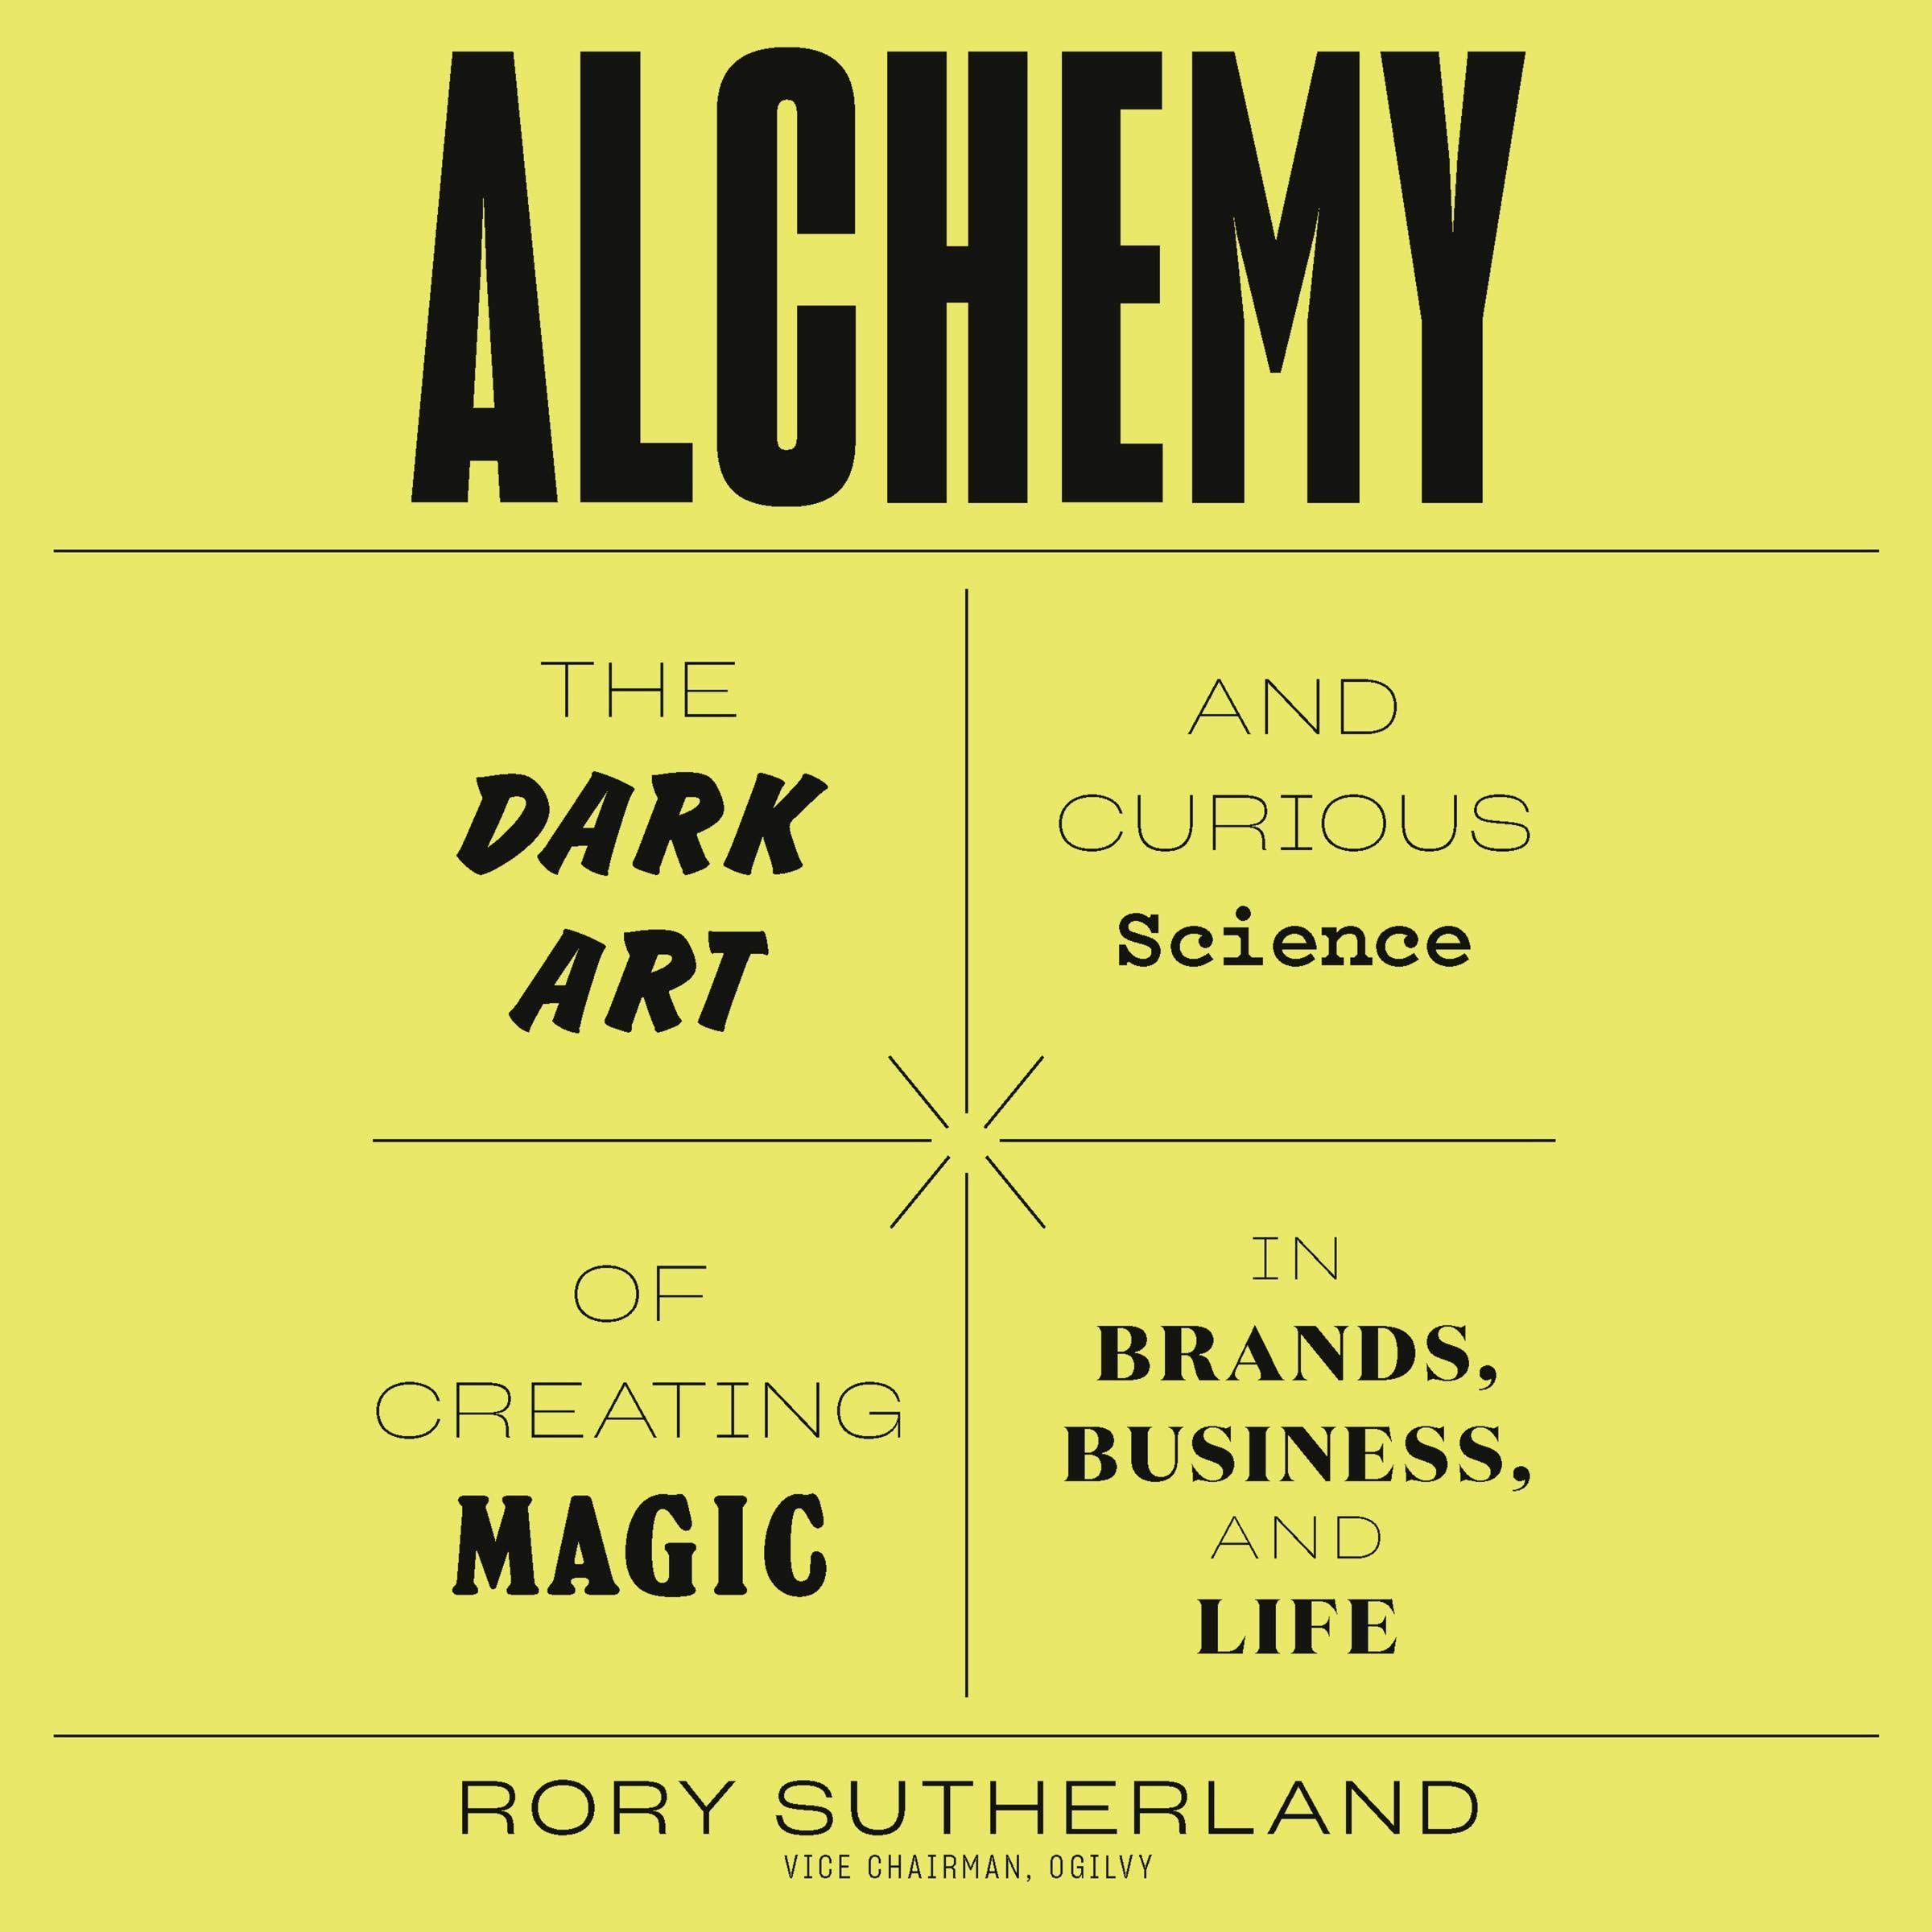 Pdf Epub Free Download Alchemy The Dark Art And Curious Science